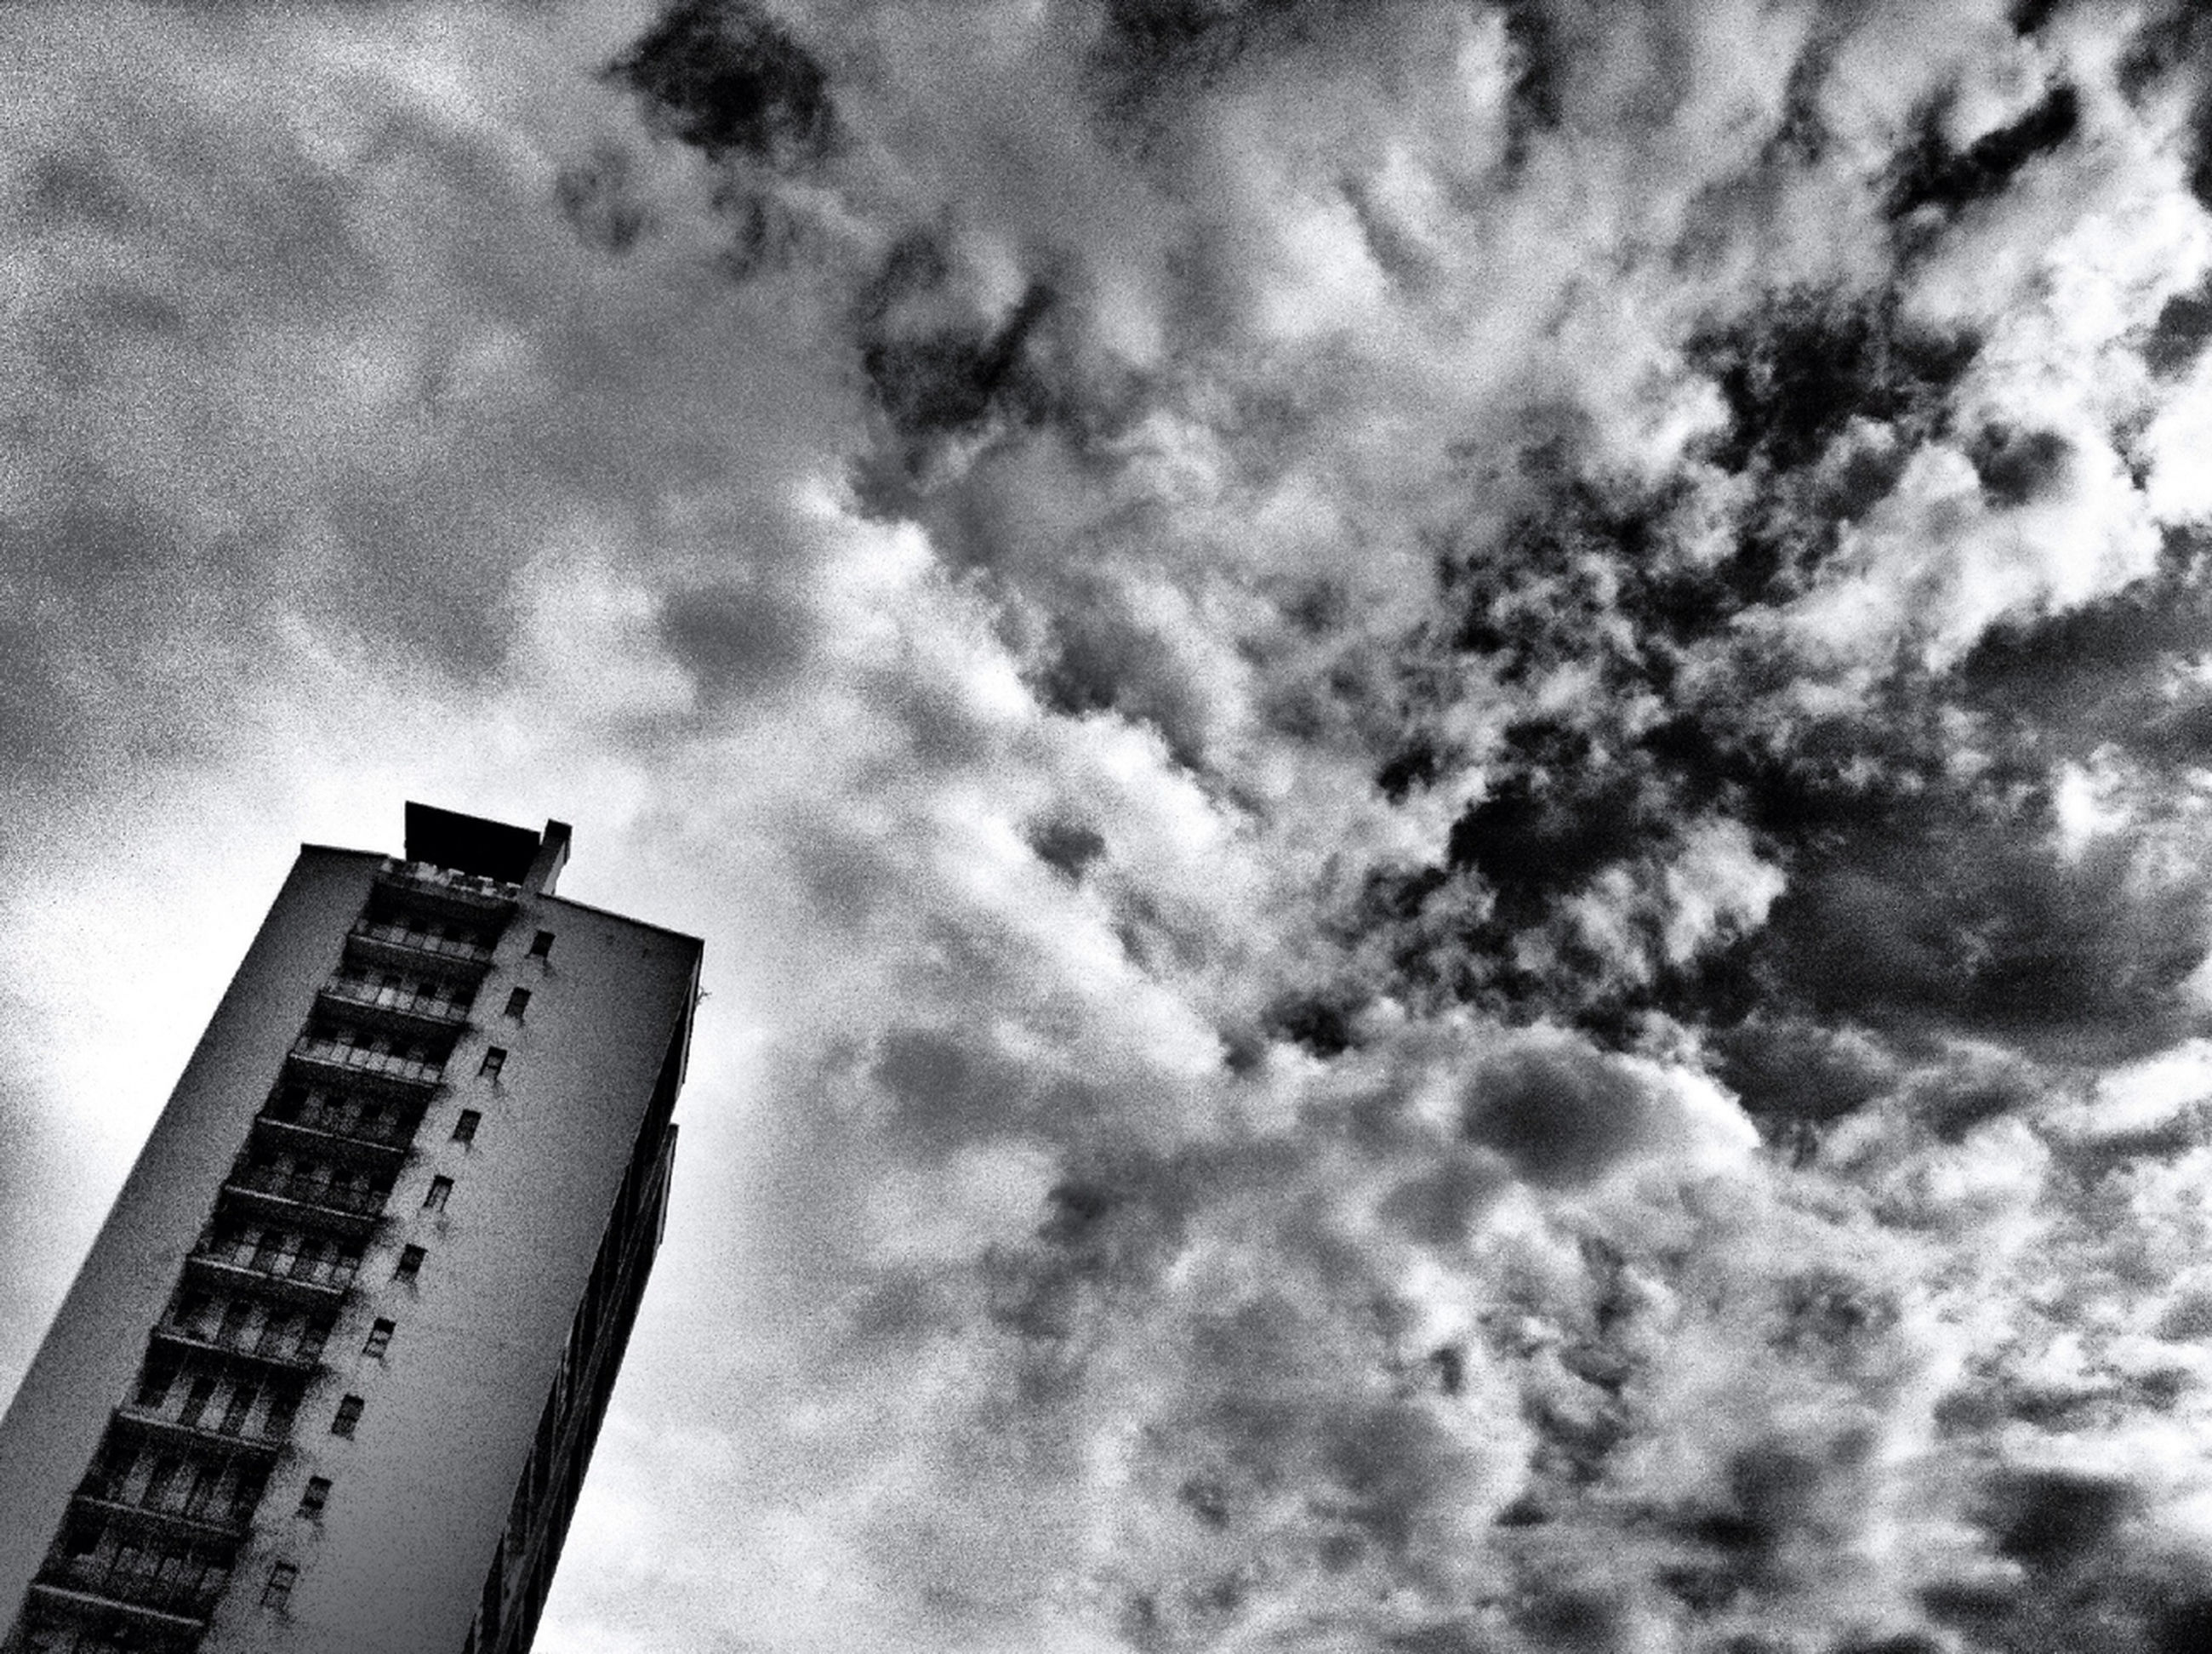 sky, cloud - sky, low angle view, cloudy, building exterior, architecture, city, built structure, skyscraper, cloud, weather, tall - high, outdoors, no people, communication, day, modern, tower, nature, overcast